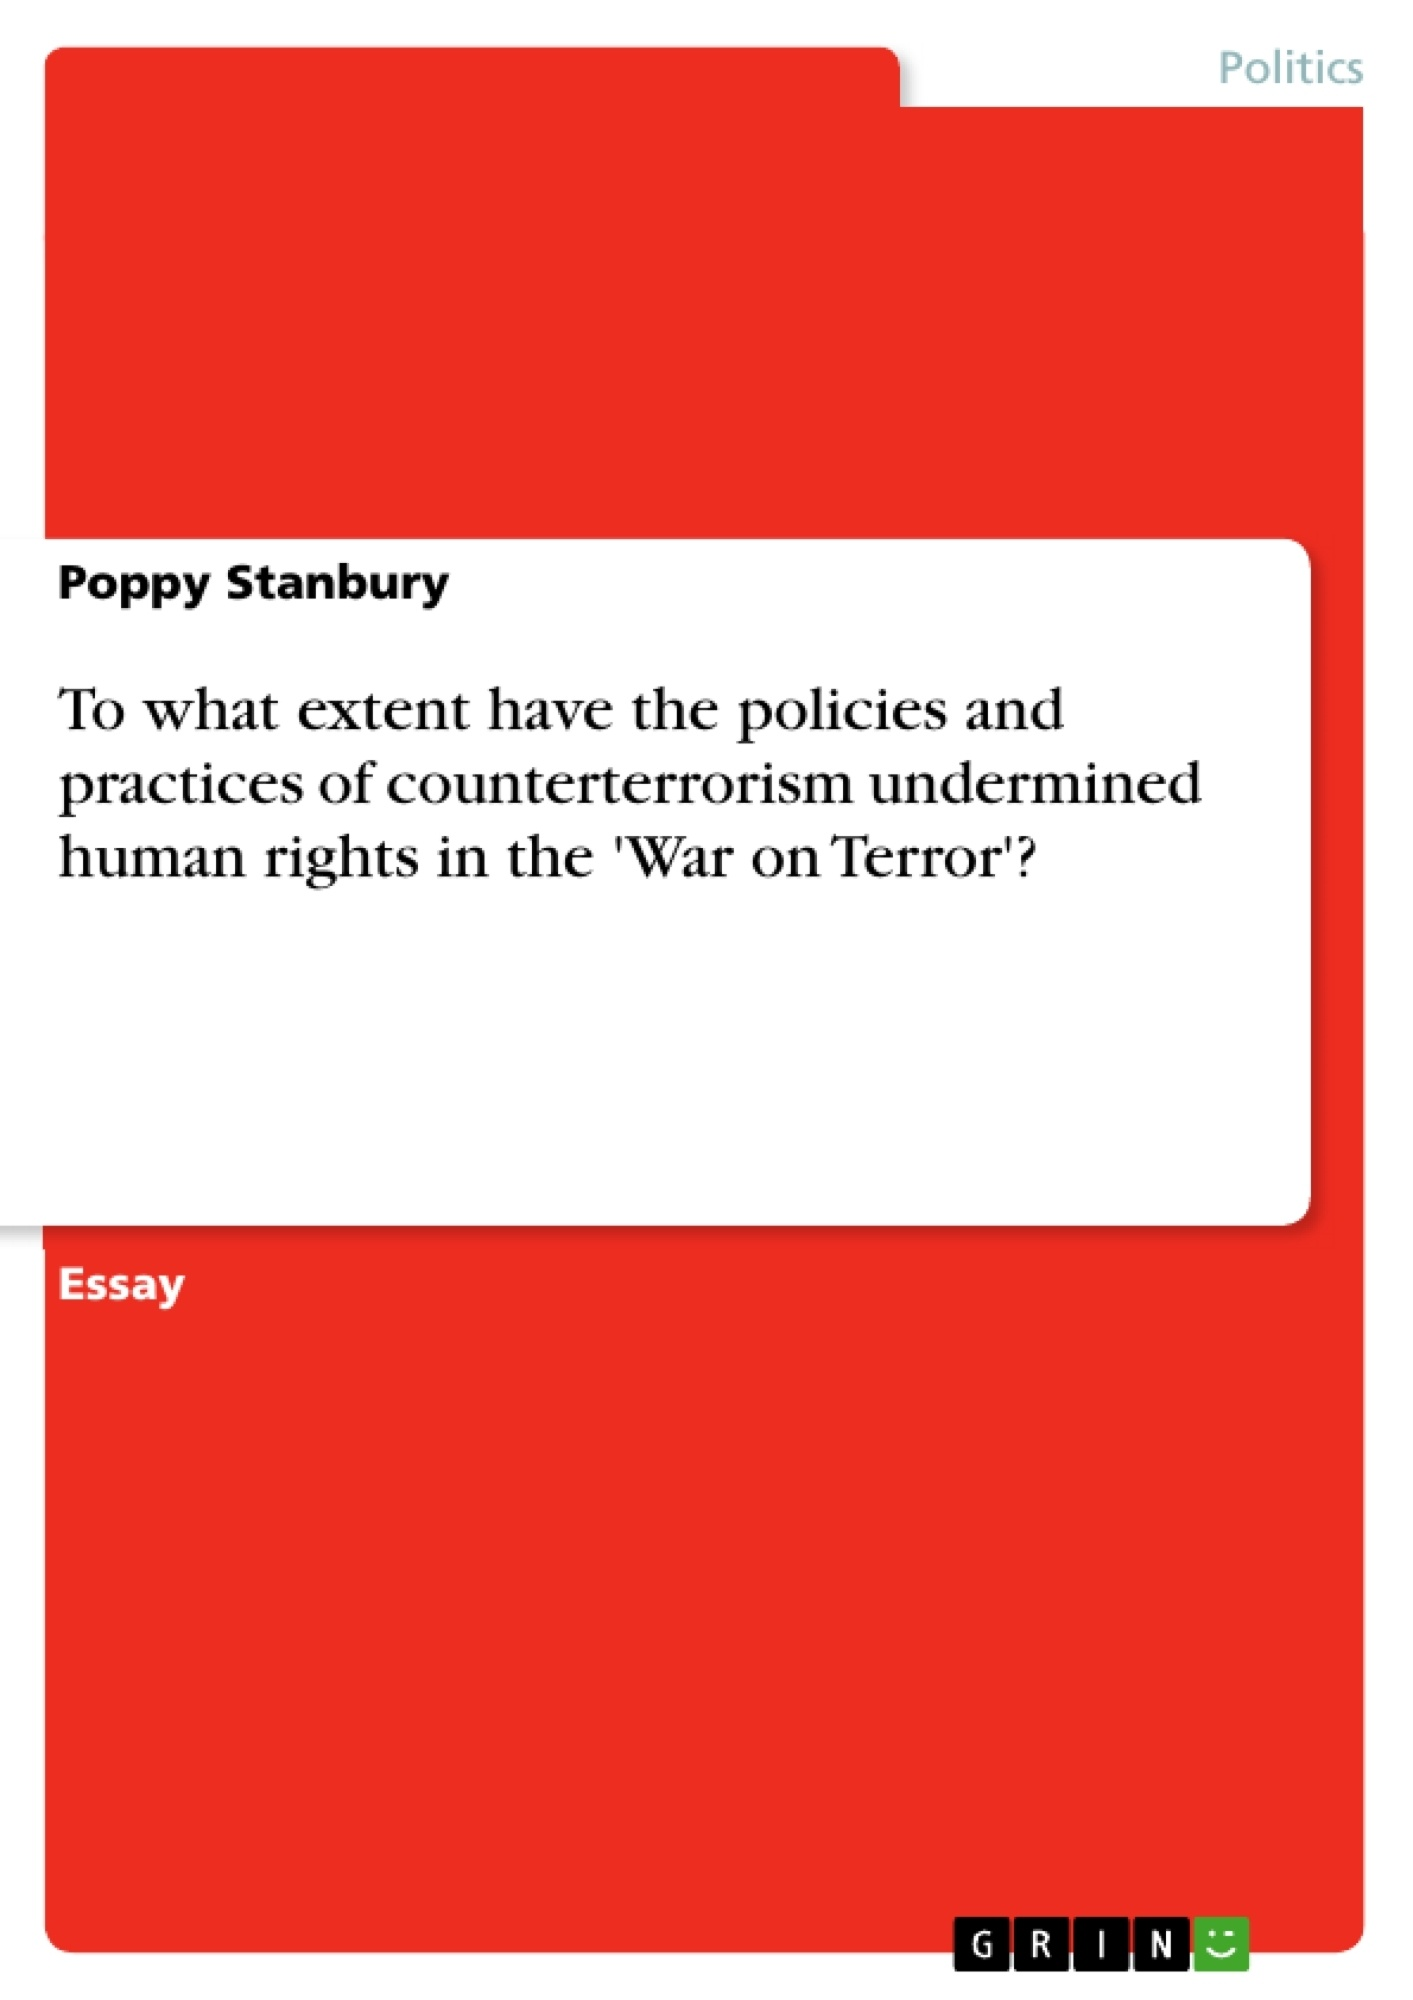 Title: To what extent have the policies and practices of counterterrorism undermined human rights in the 'War on Terror'?